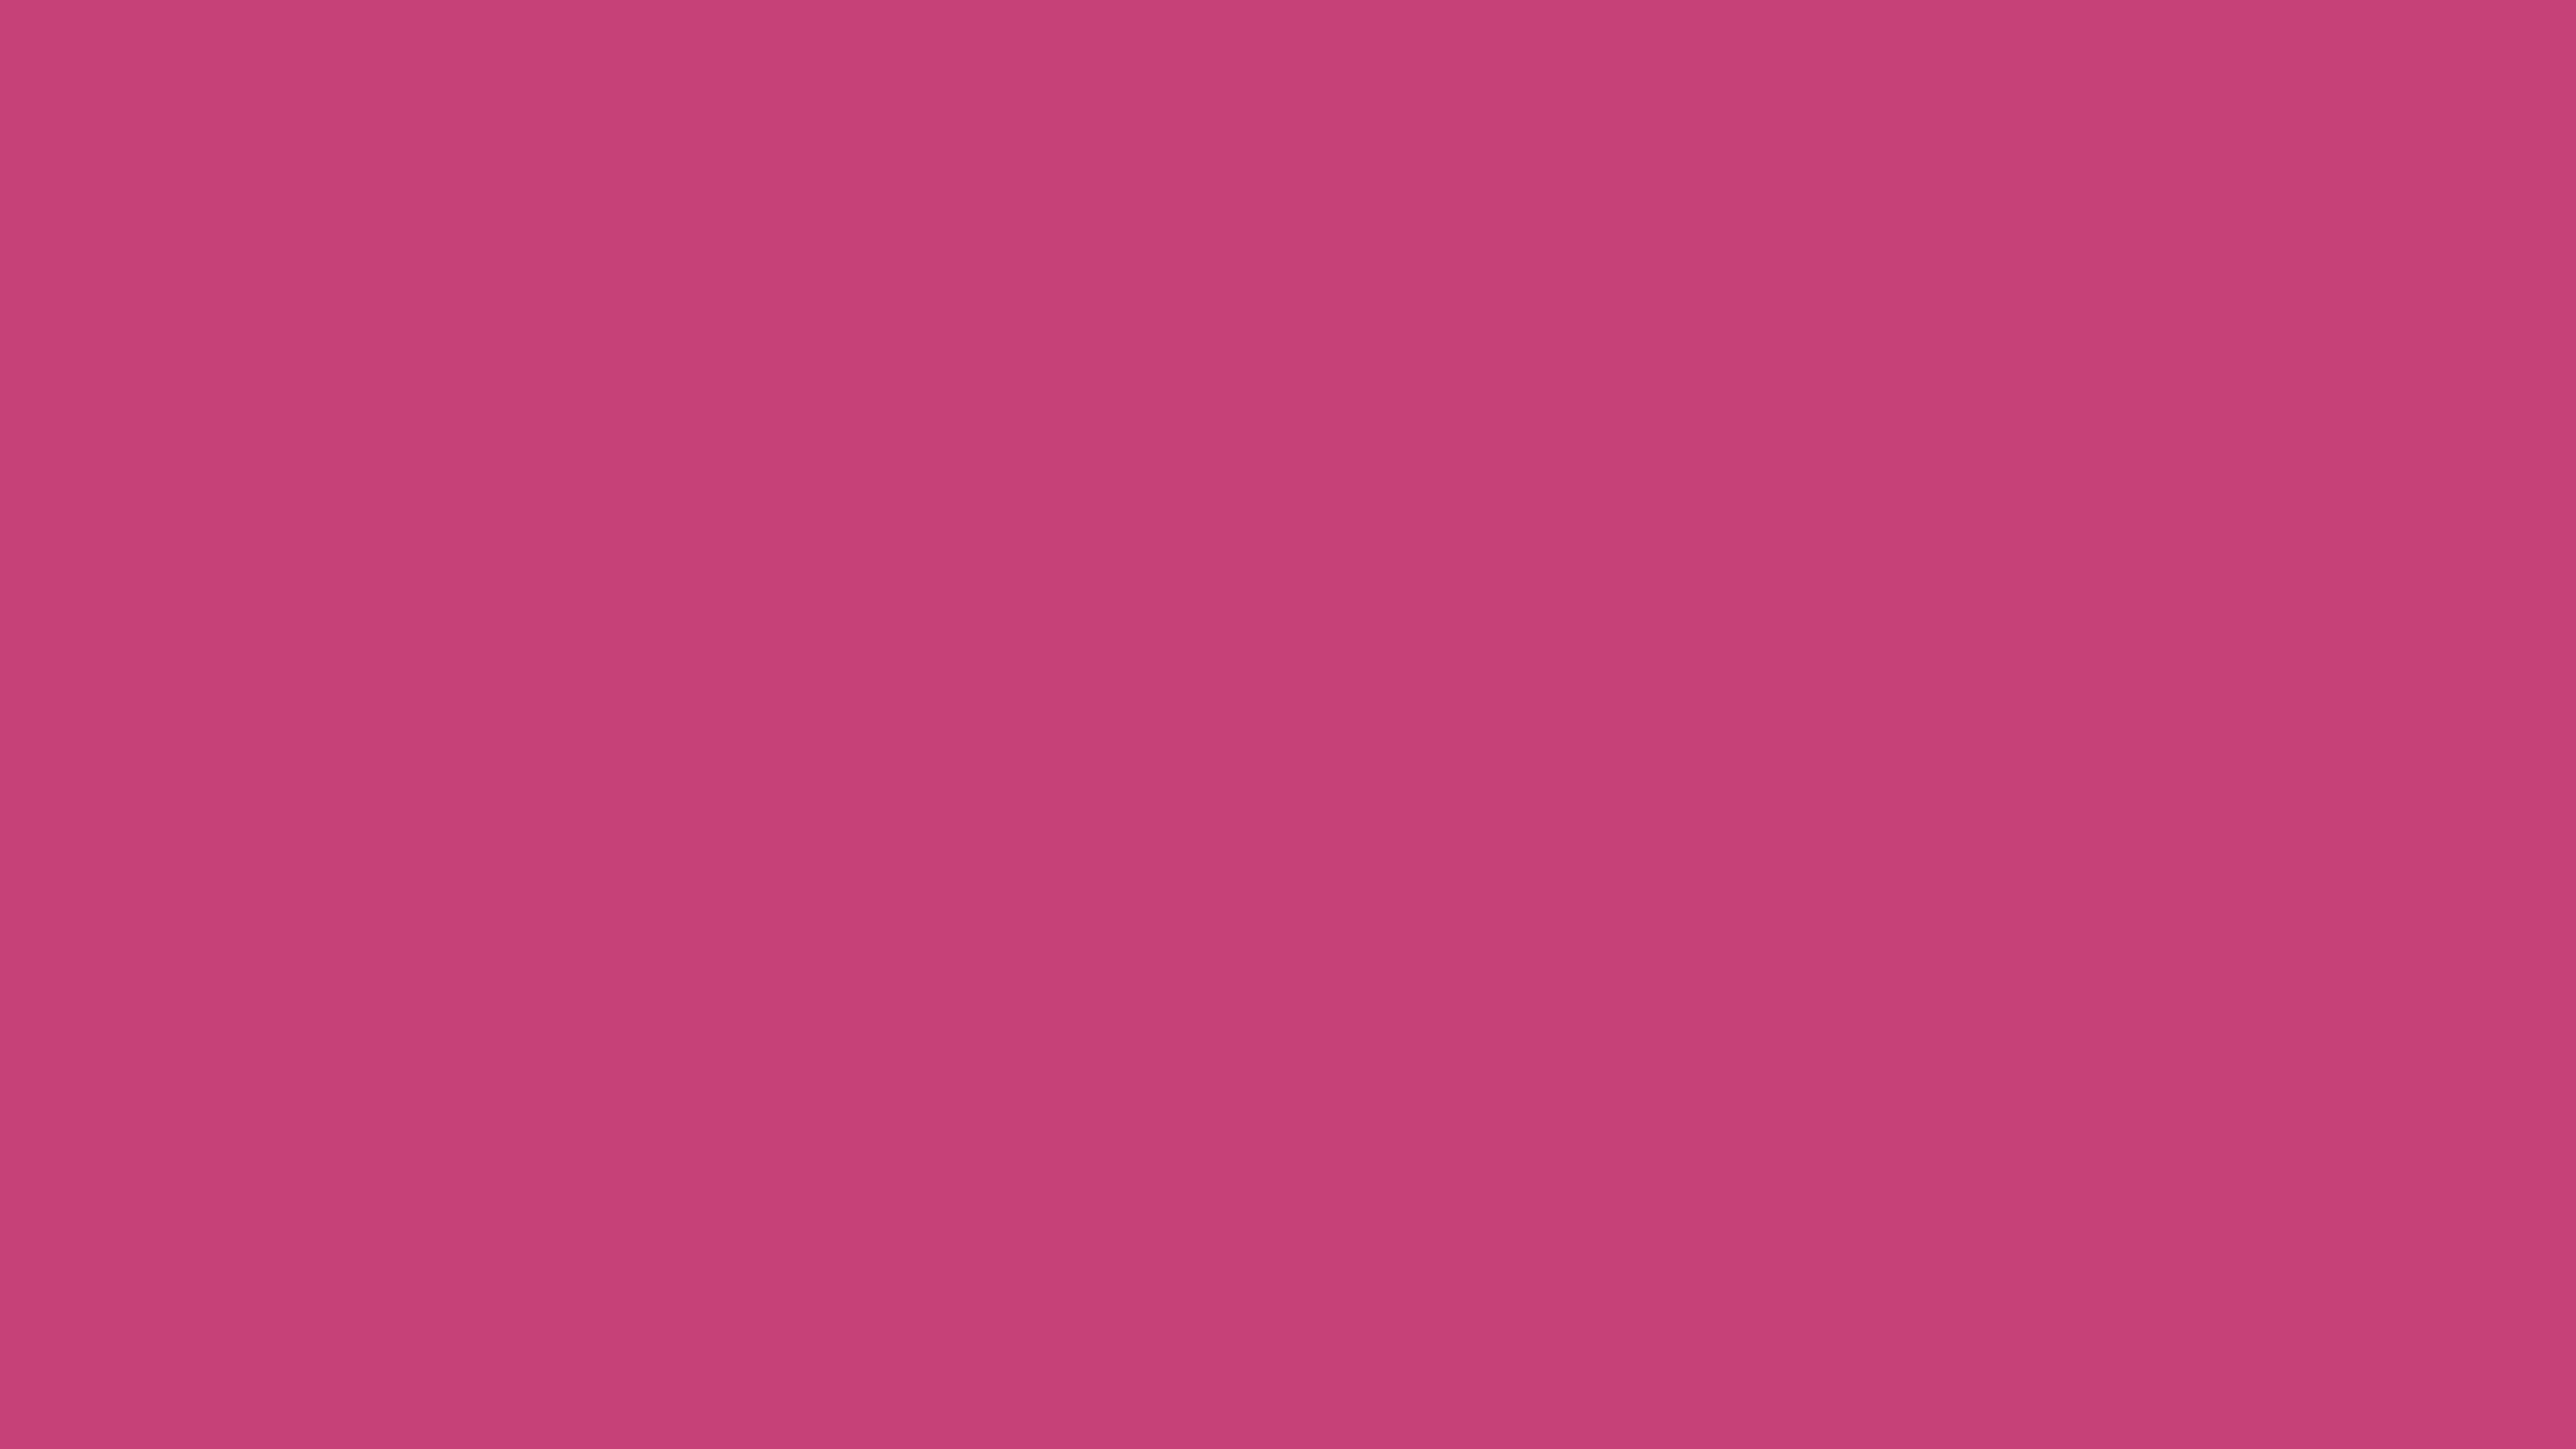 7680x4320 Fuchsia Rose Solid Color Background